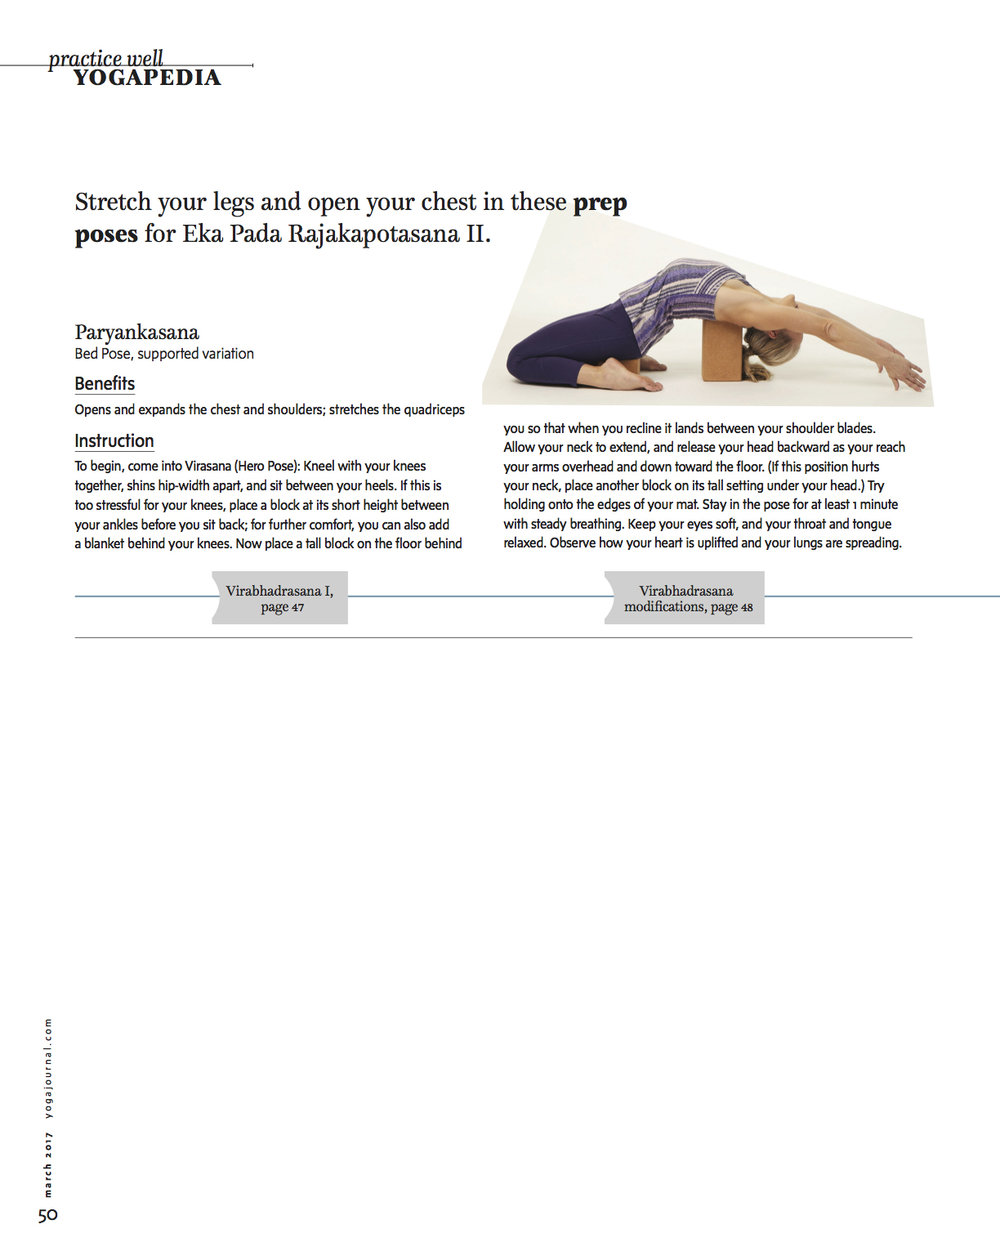 March Yogapedia page 3.jpg